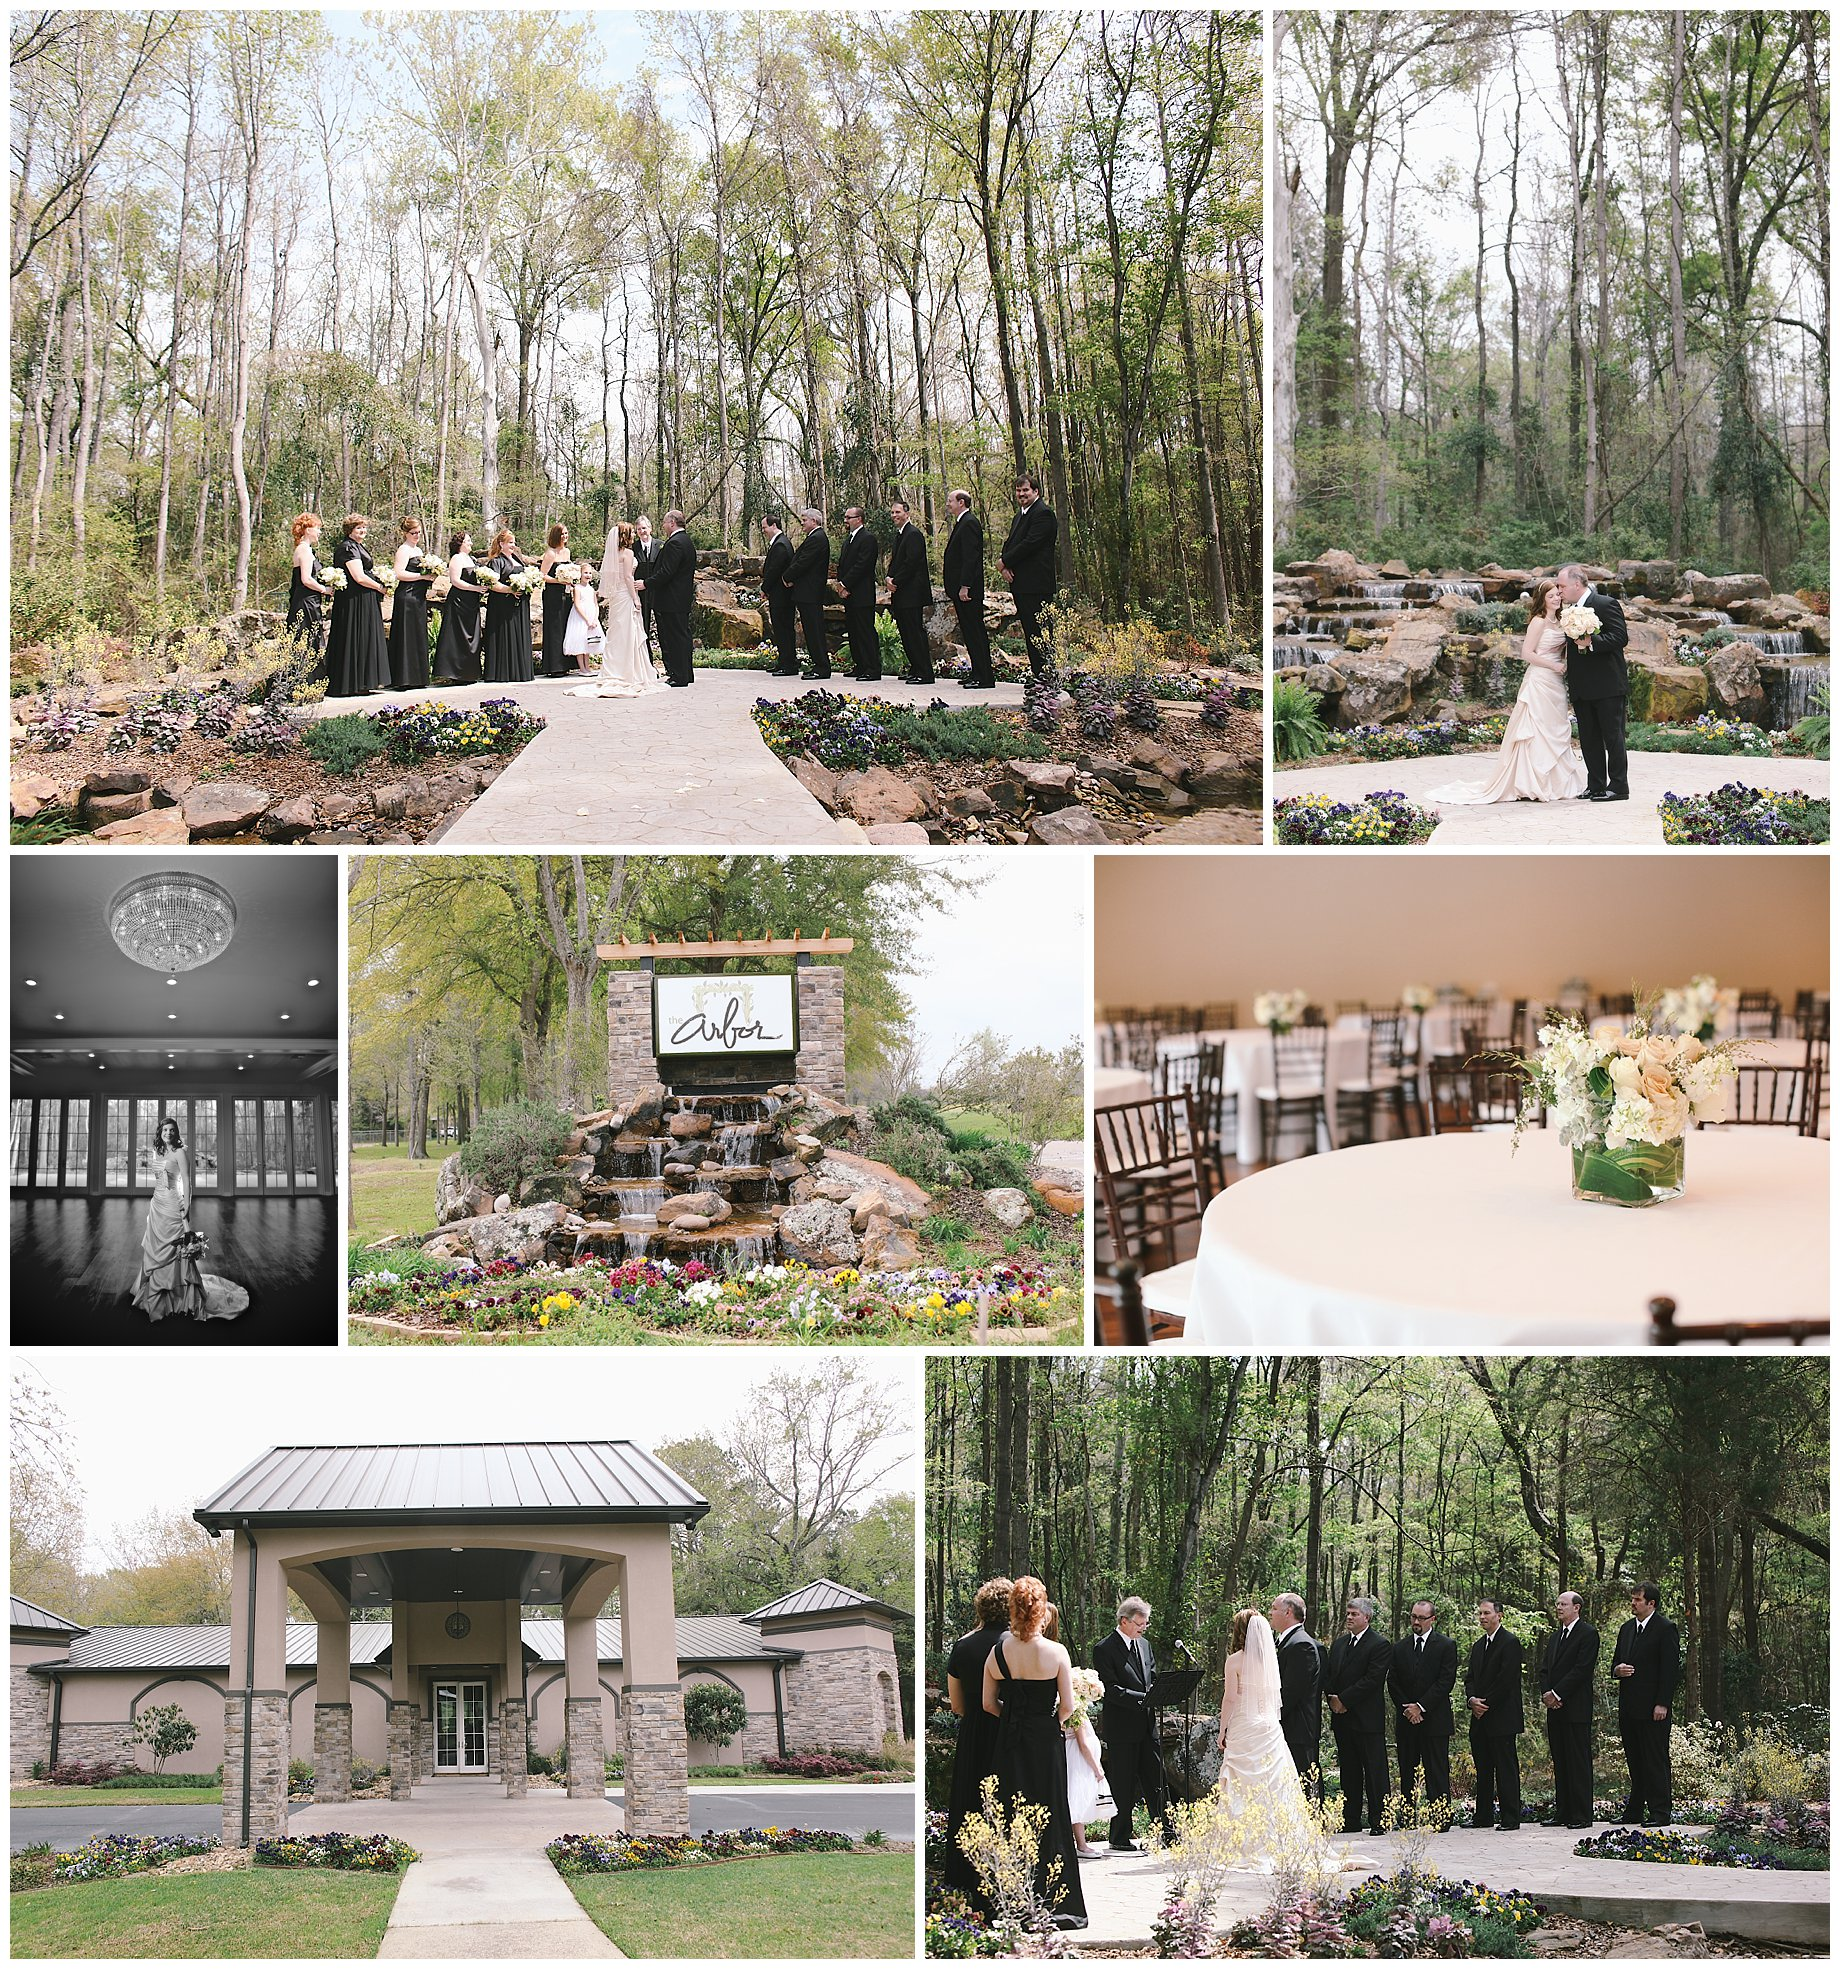 10 Amazing Places to Get Married In East Texas | AlexM ...